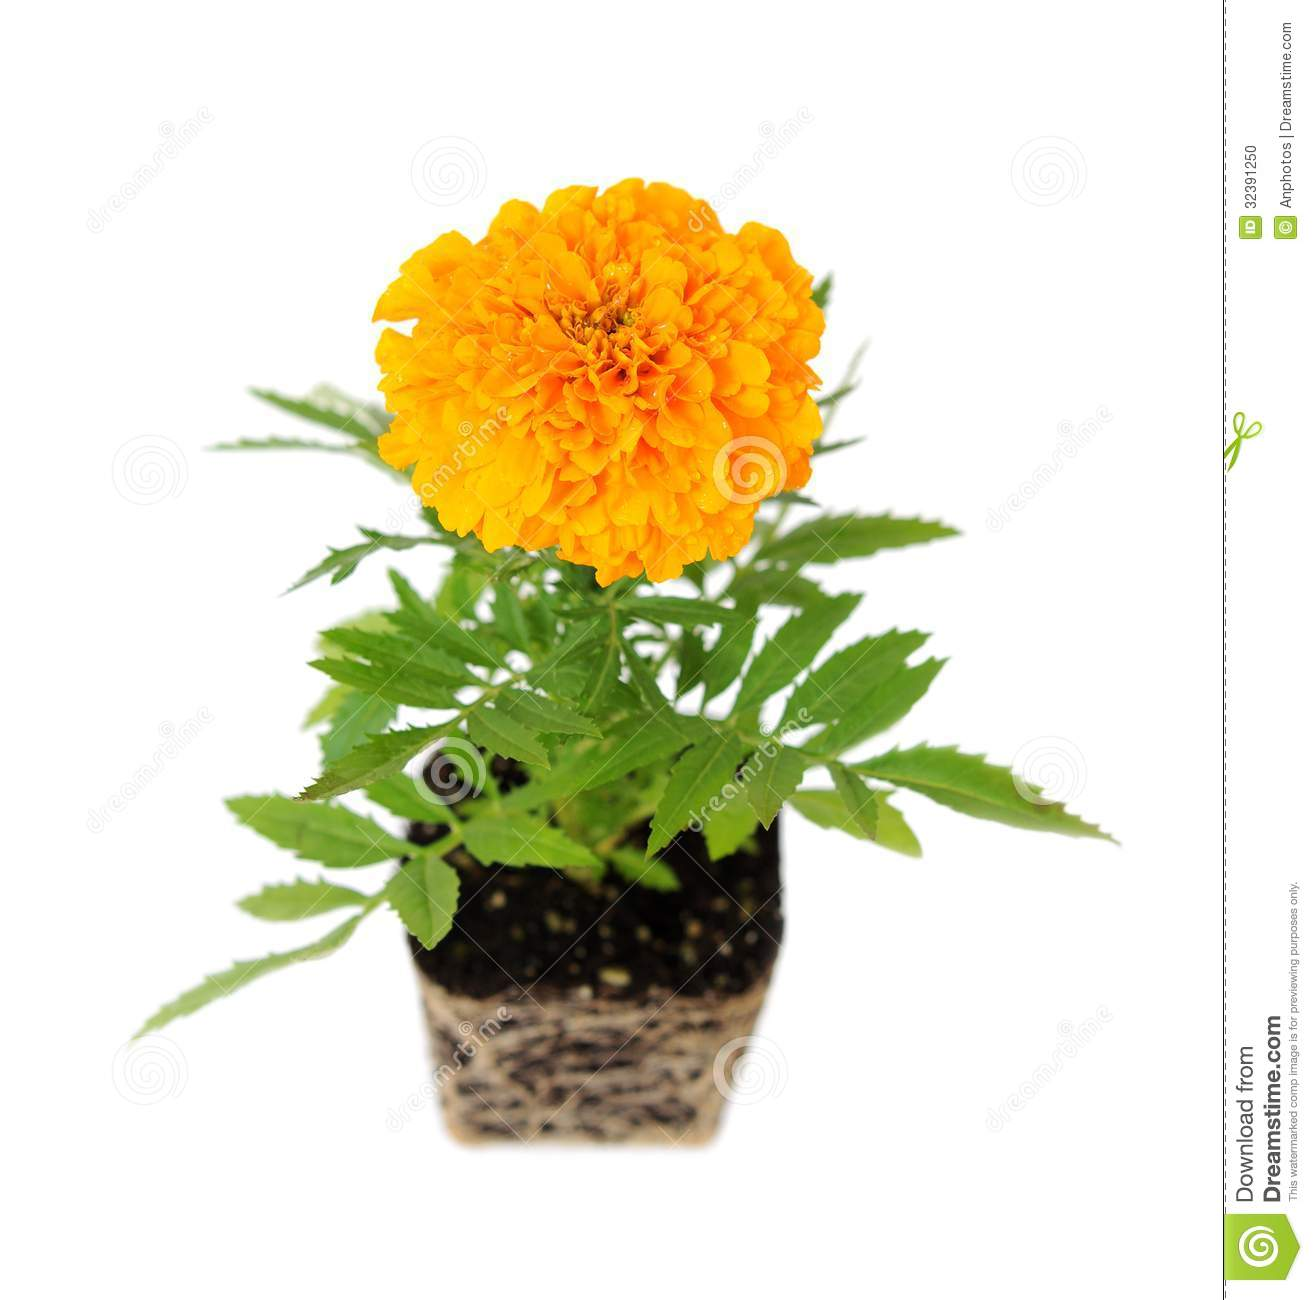 African Marigold Stock Photo - Image: 32391250 Marigold Plant With Roots